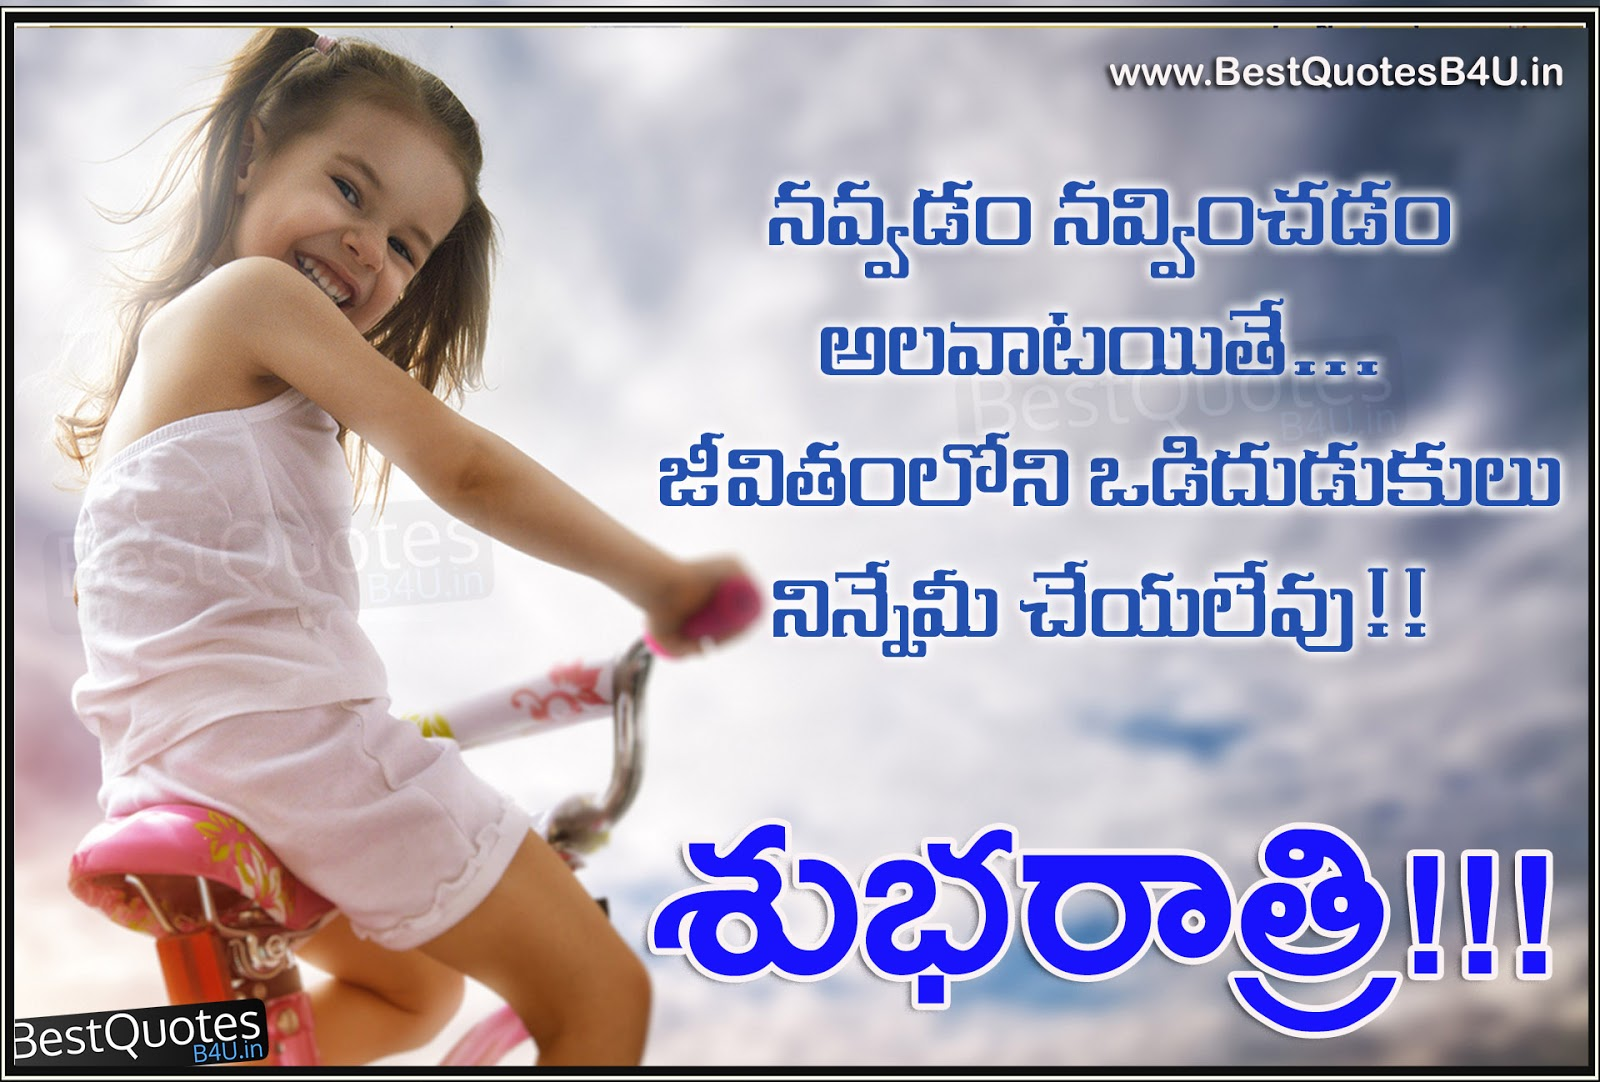 Good Morning Images With Funny Quotes In Telugu Archidev